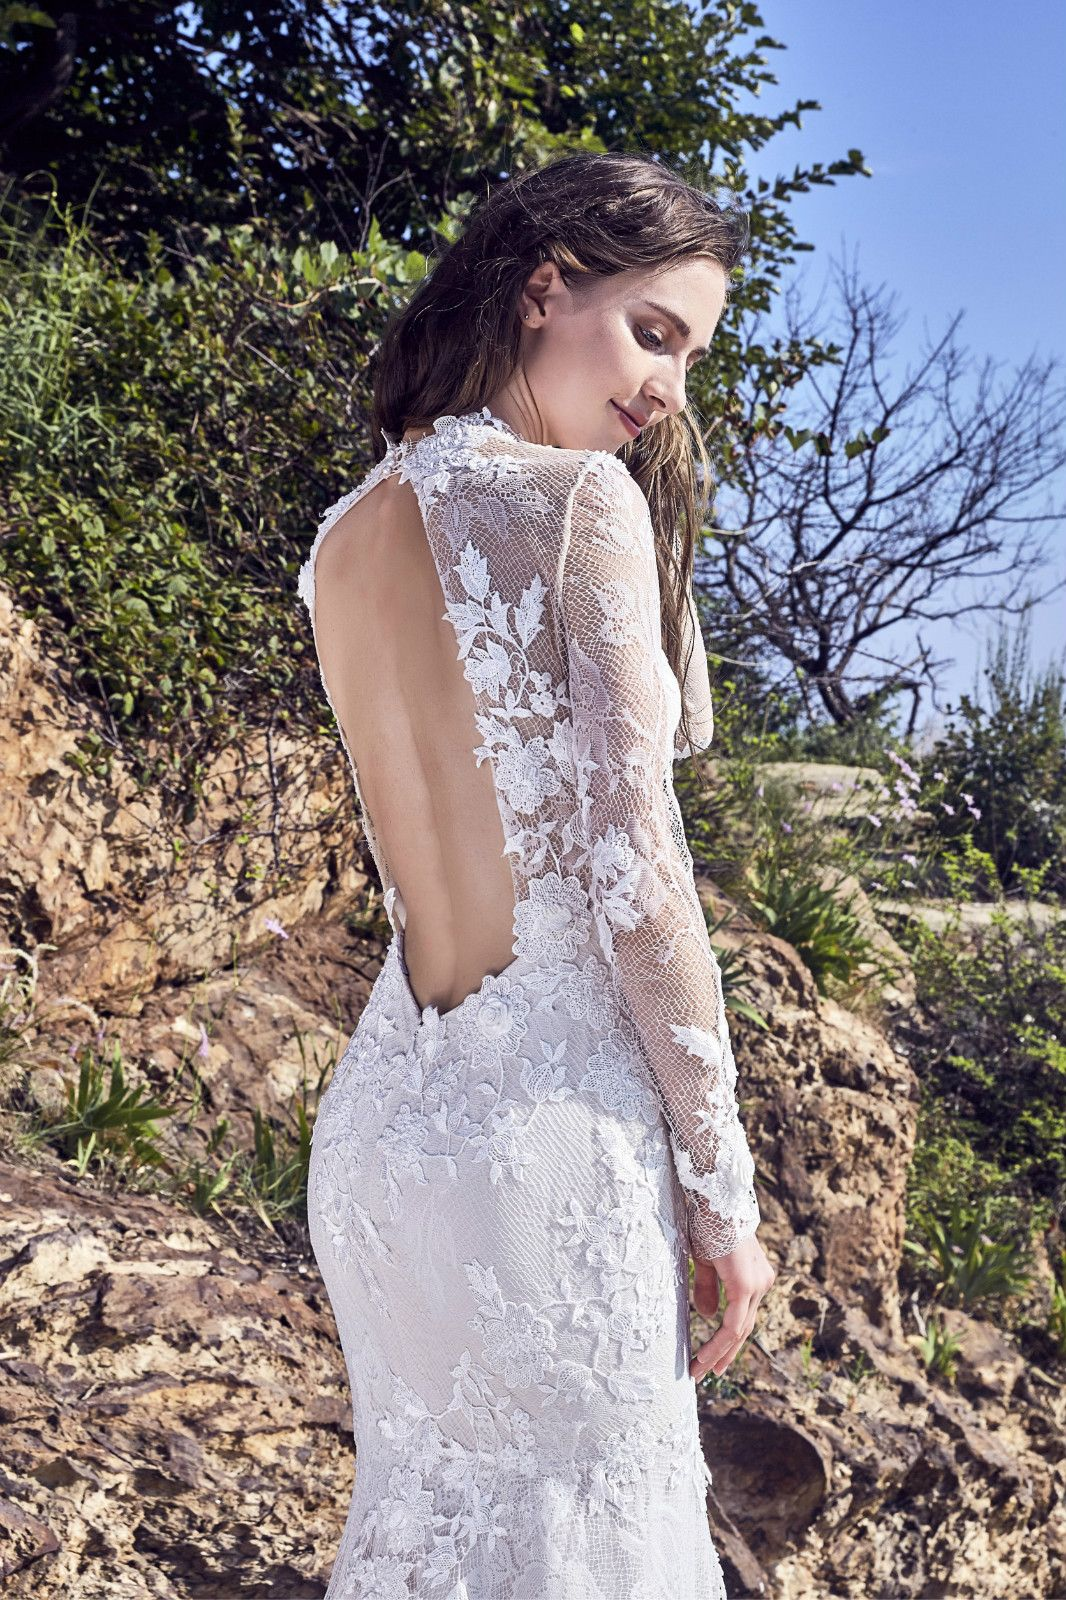 Halo by Chic Nostalgia will be coming soon to Sincerely, The Bride ...